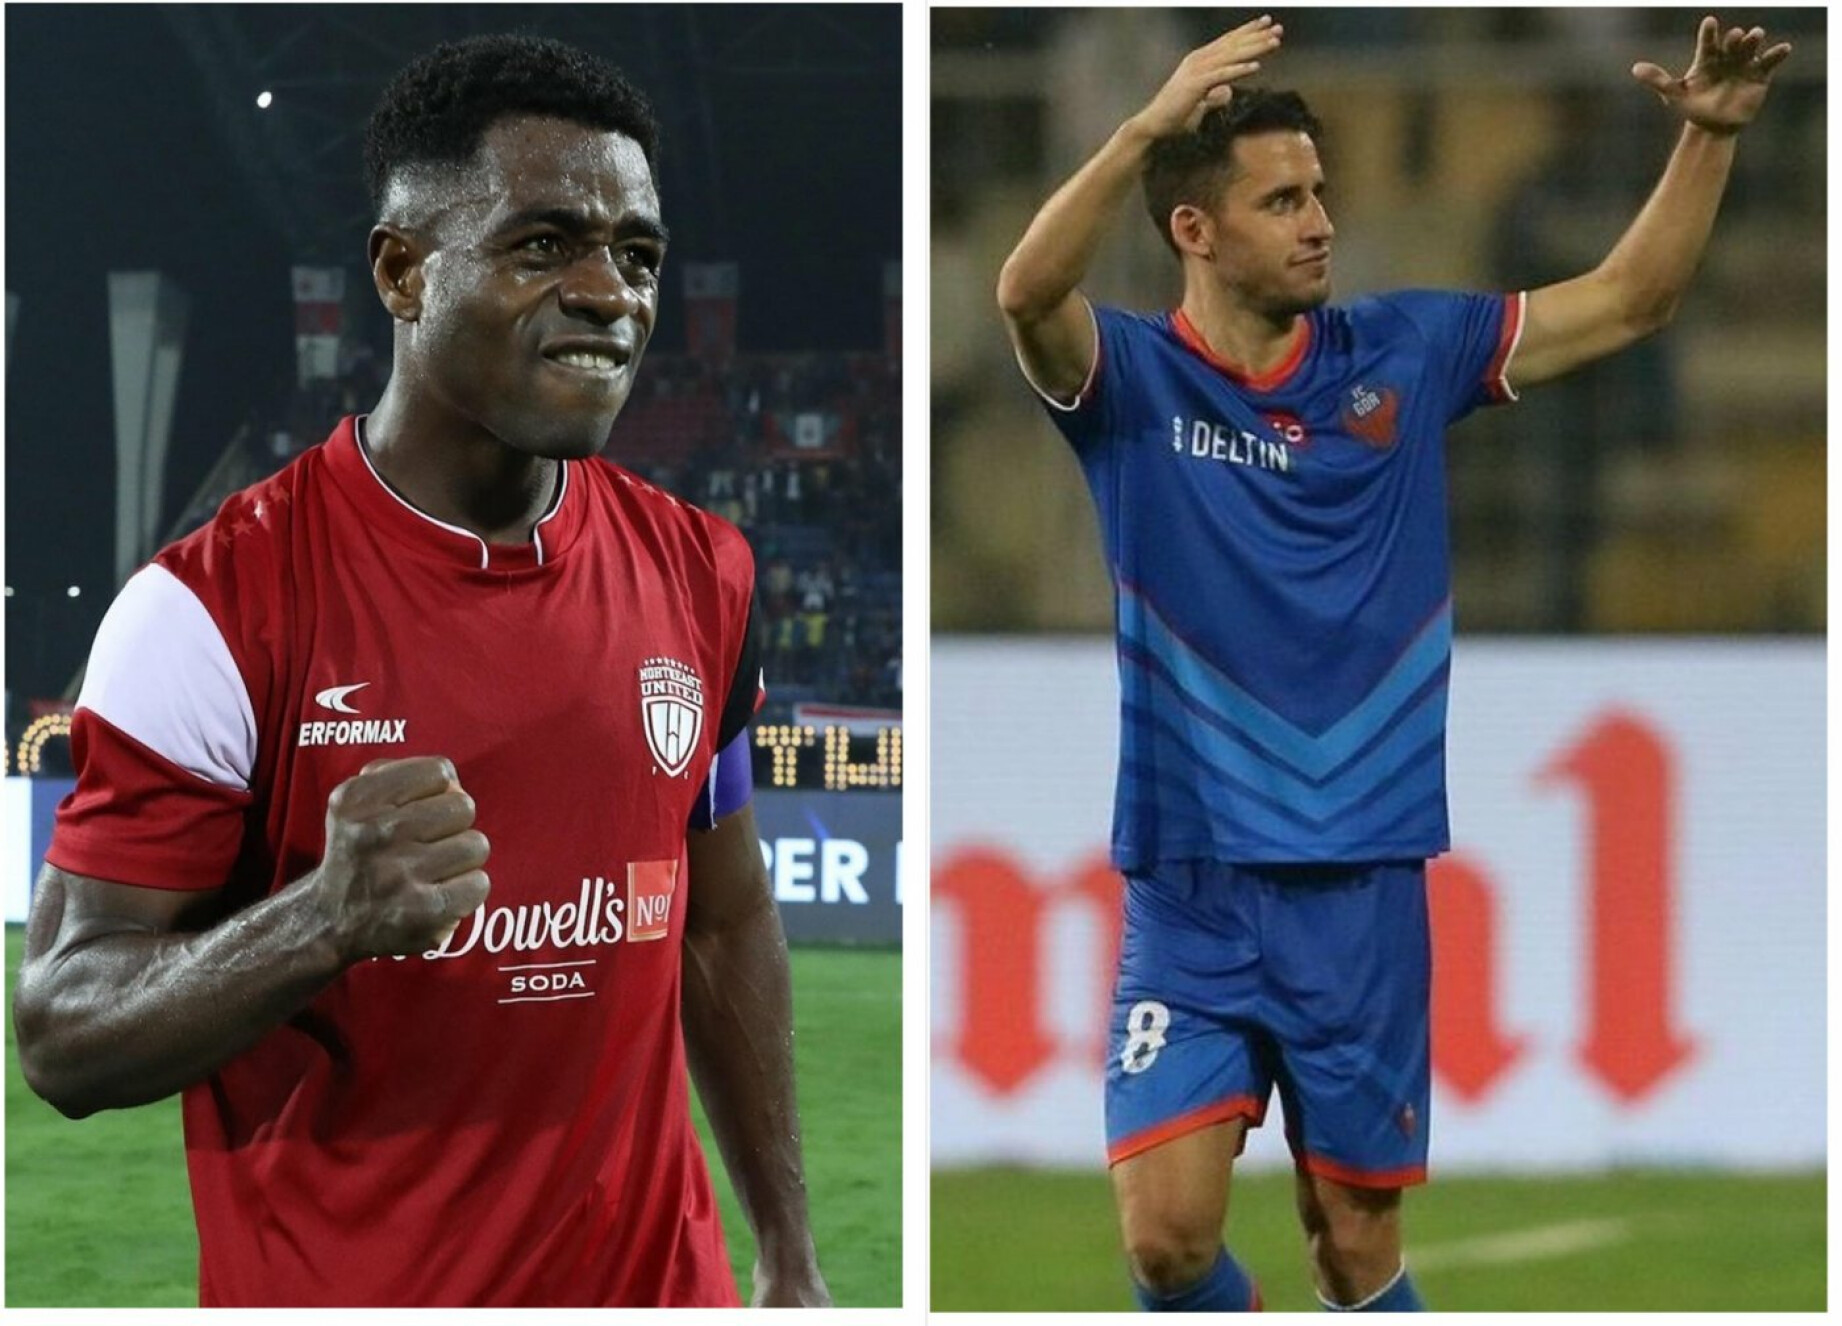 BREAKING NEWS: Corominas and Ogbeche leave FC Goa and NorthEast United respectively